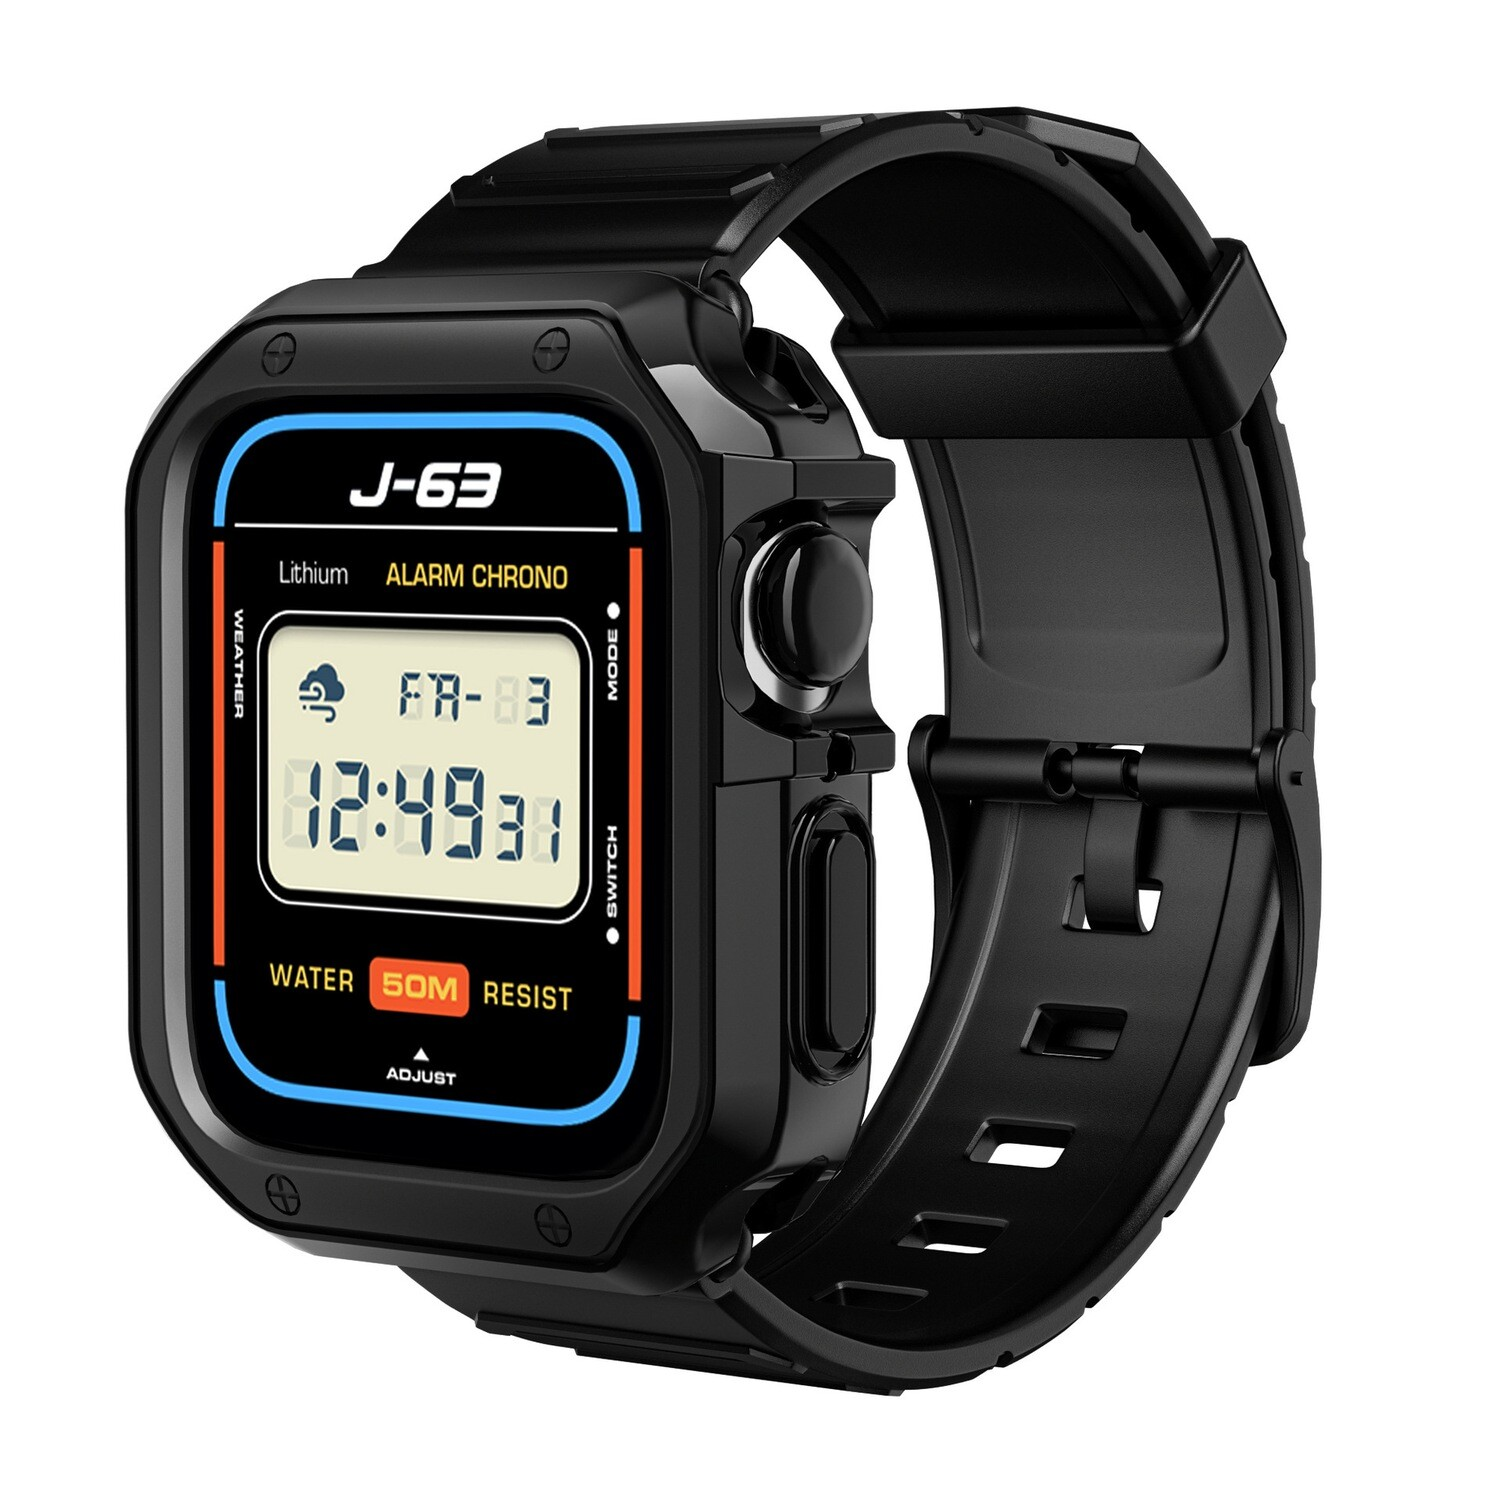 Premium TPU Protector Case with Silicone Band for Apple Watch - Black